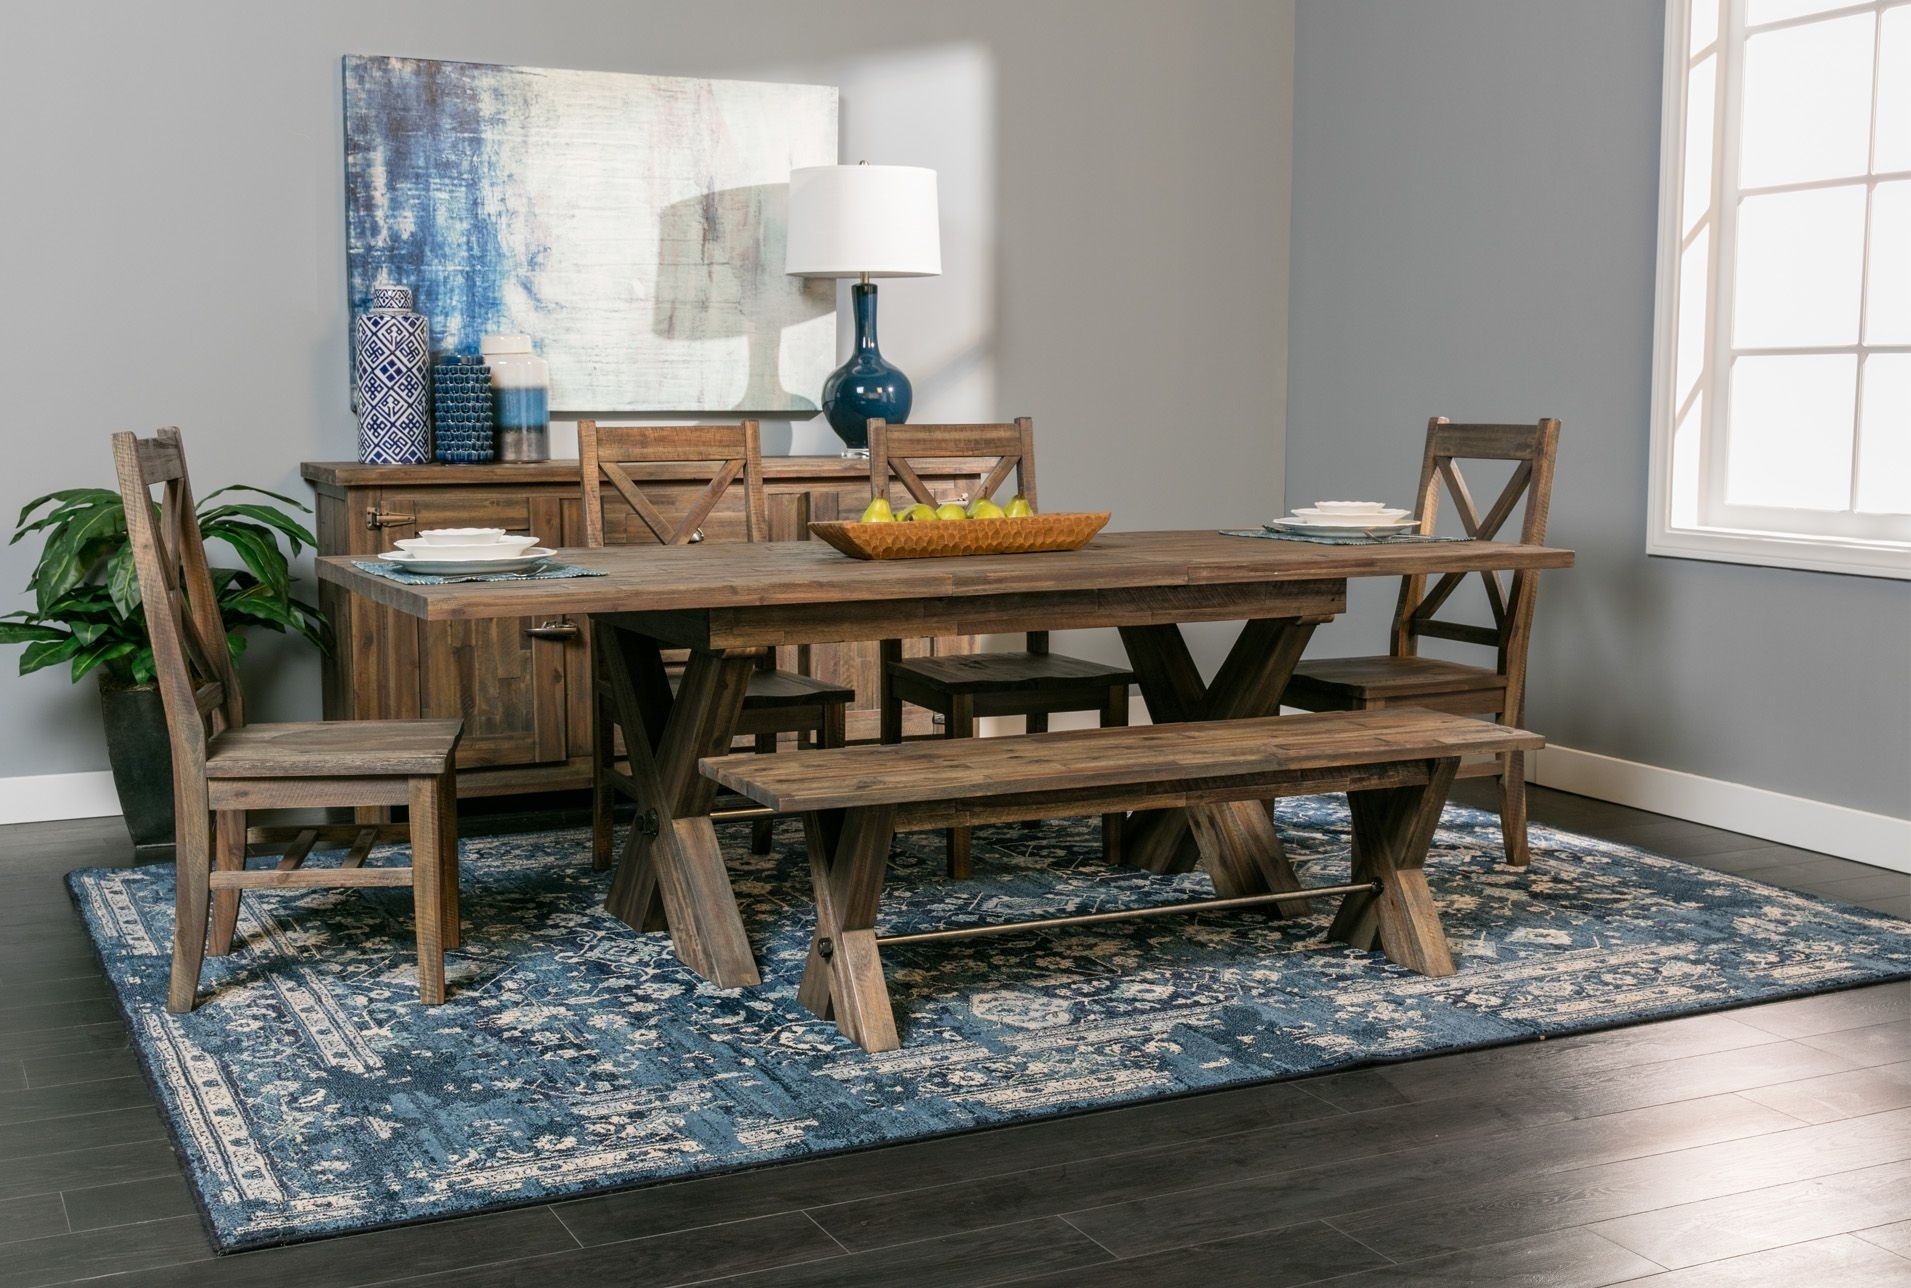 Mallard Extension Dining Table In 2018 | Products | Pinterest Within Most Current Mallard Extension Dining Tables (View 4 of 20)